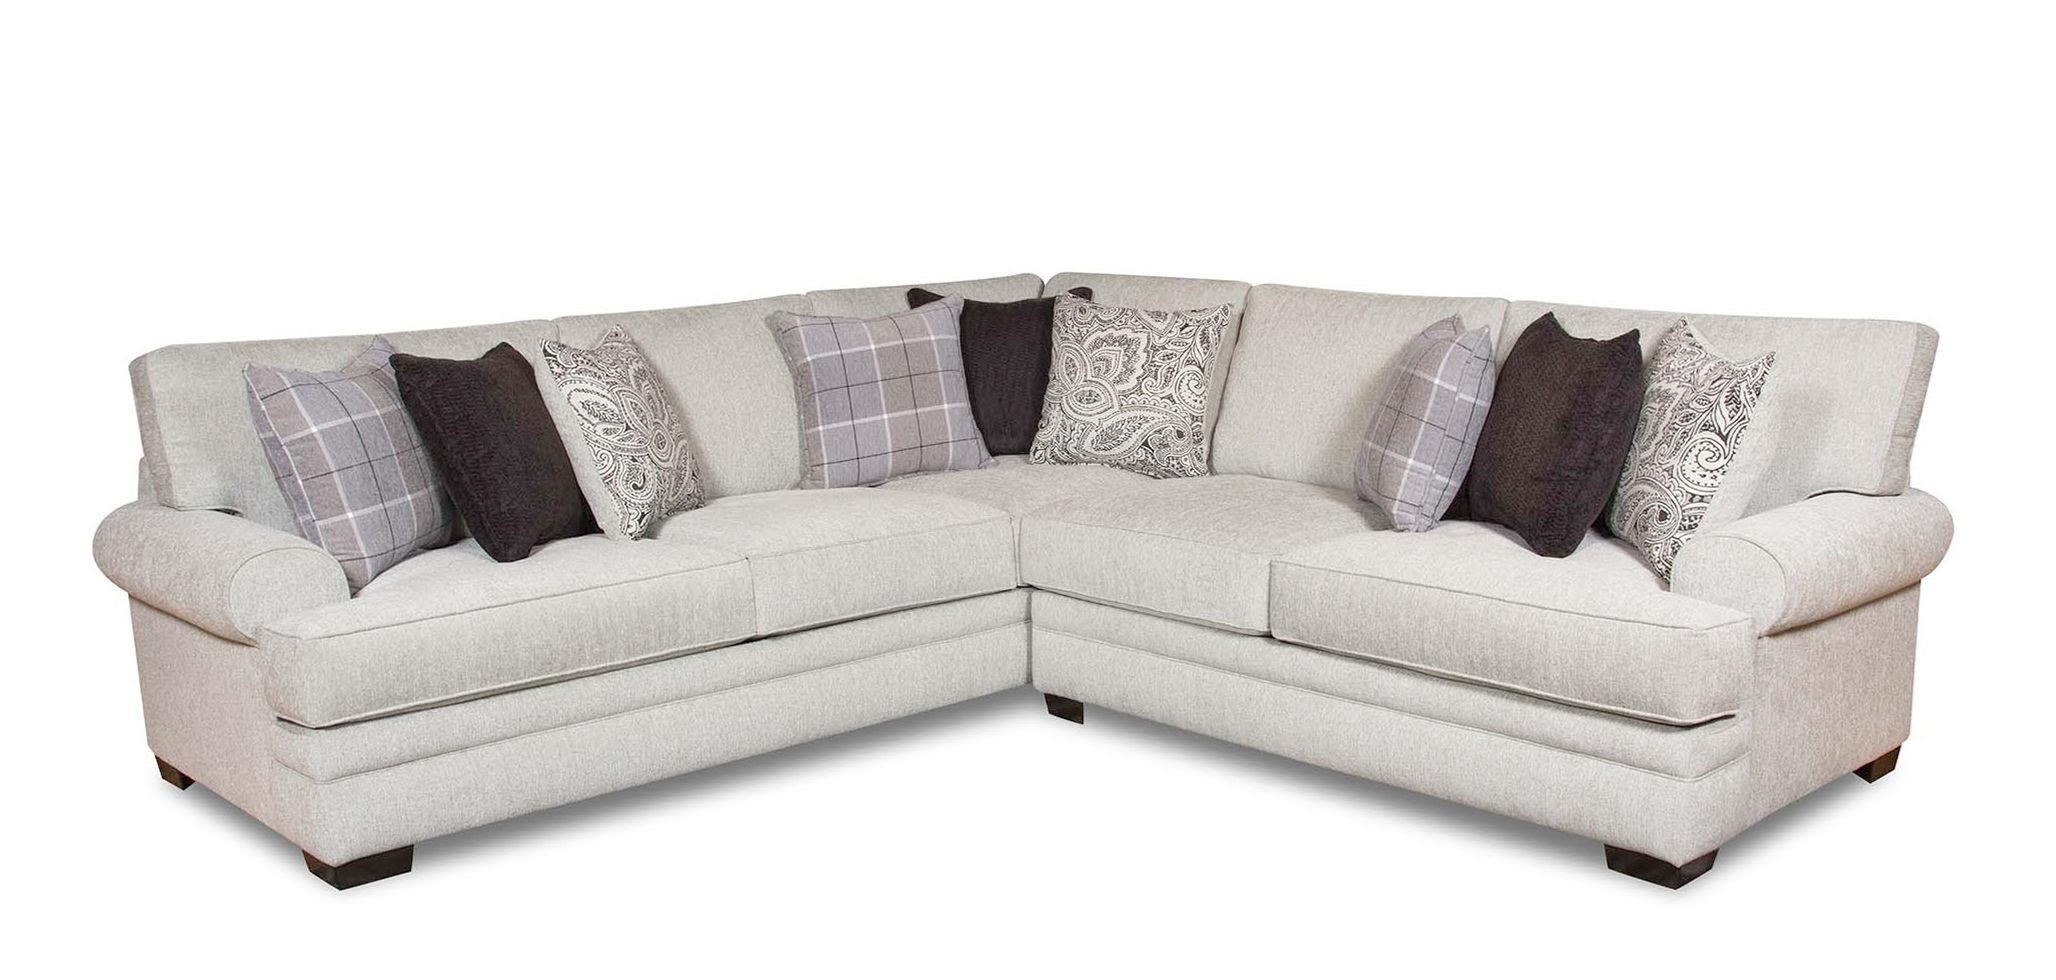 Corinthian 5900 2 Piece Sectional - Item Number 5903LC+5902RF GRIFFIN MENSWEAR  sc 1 st  Miskelly Furniture : corinthian furniture sectional - Sectionals, Sofas & Couches